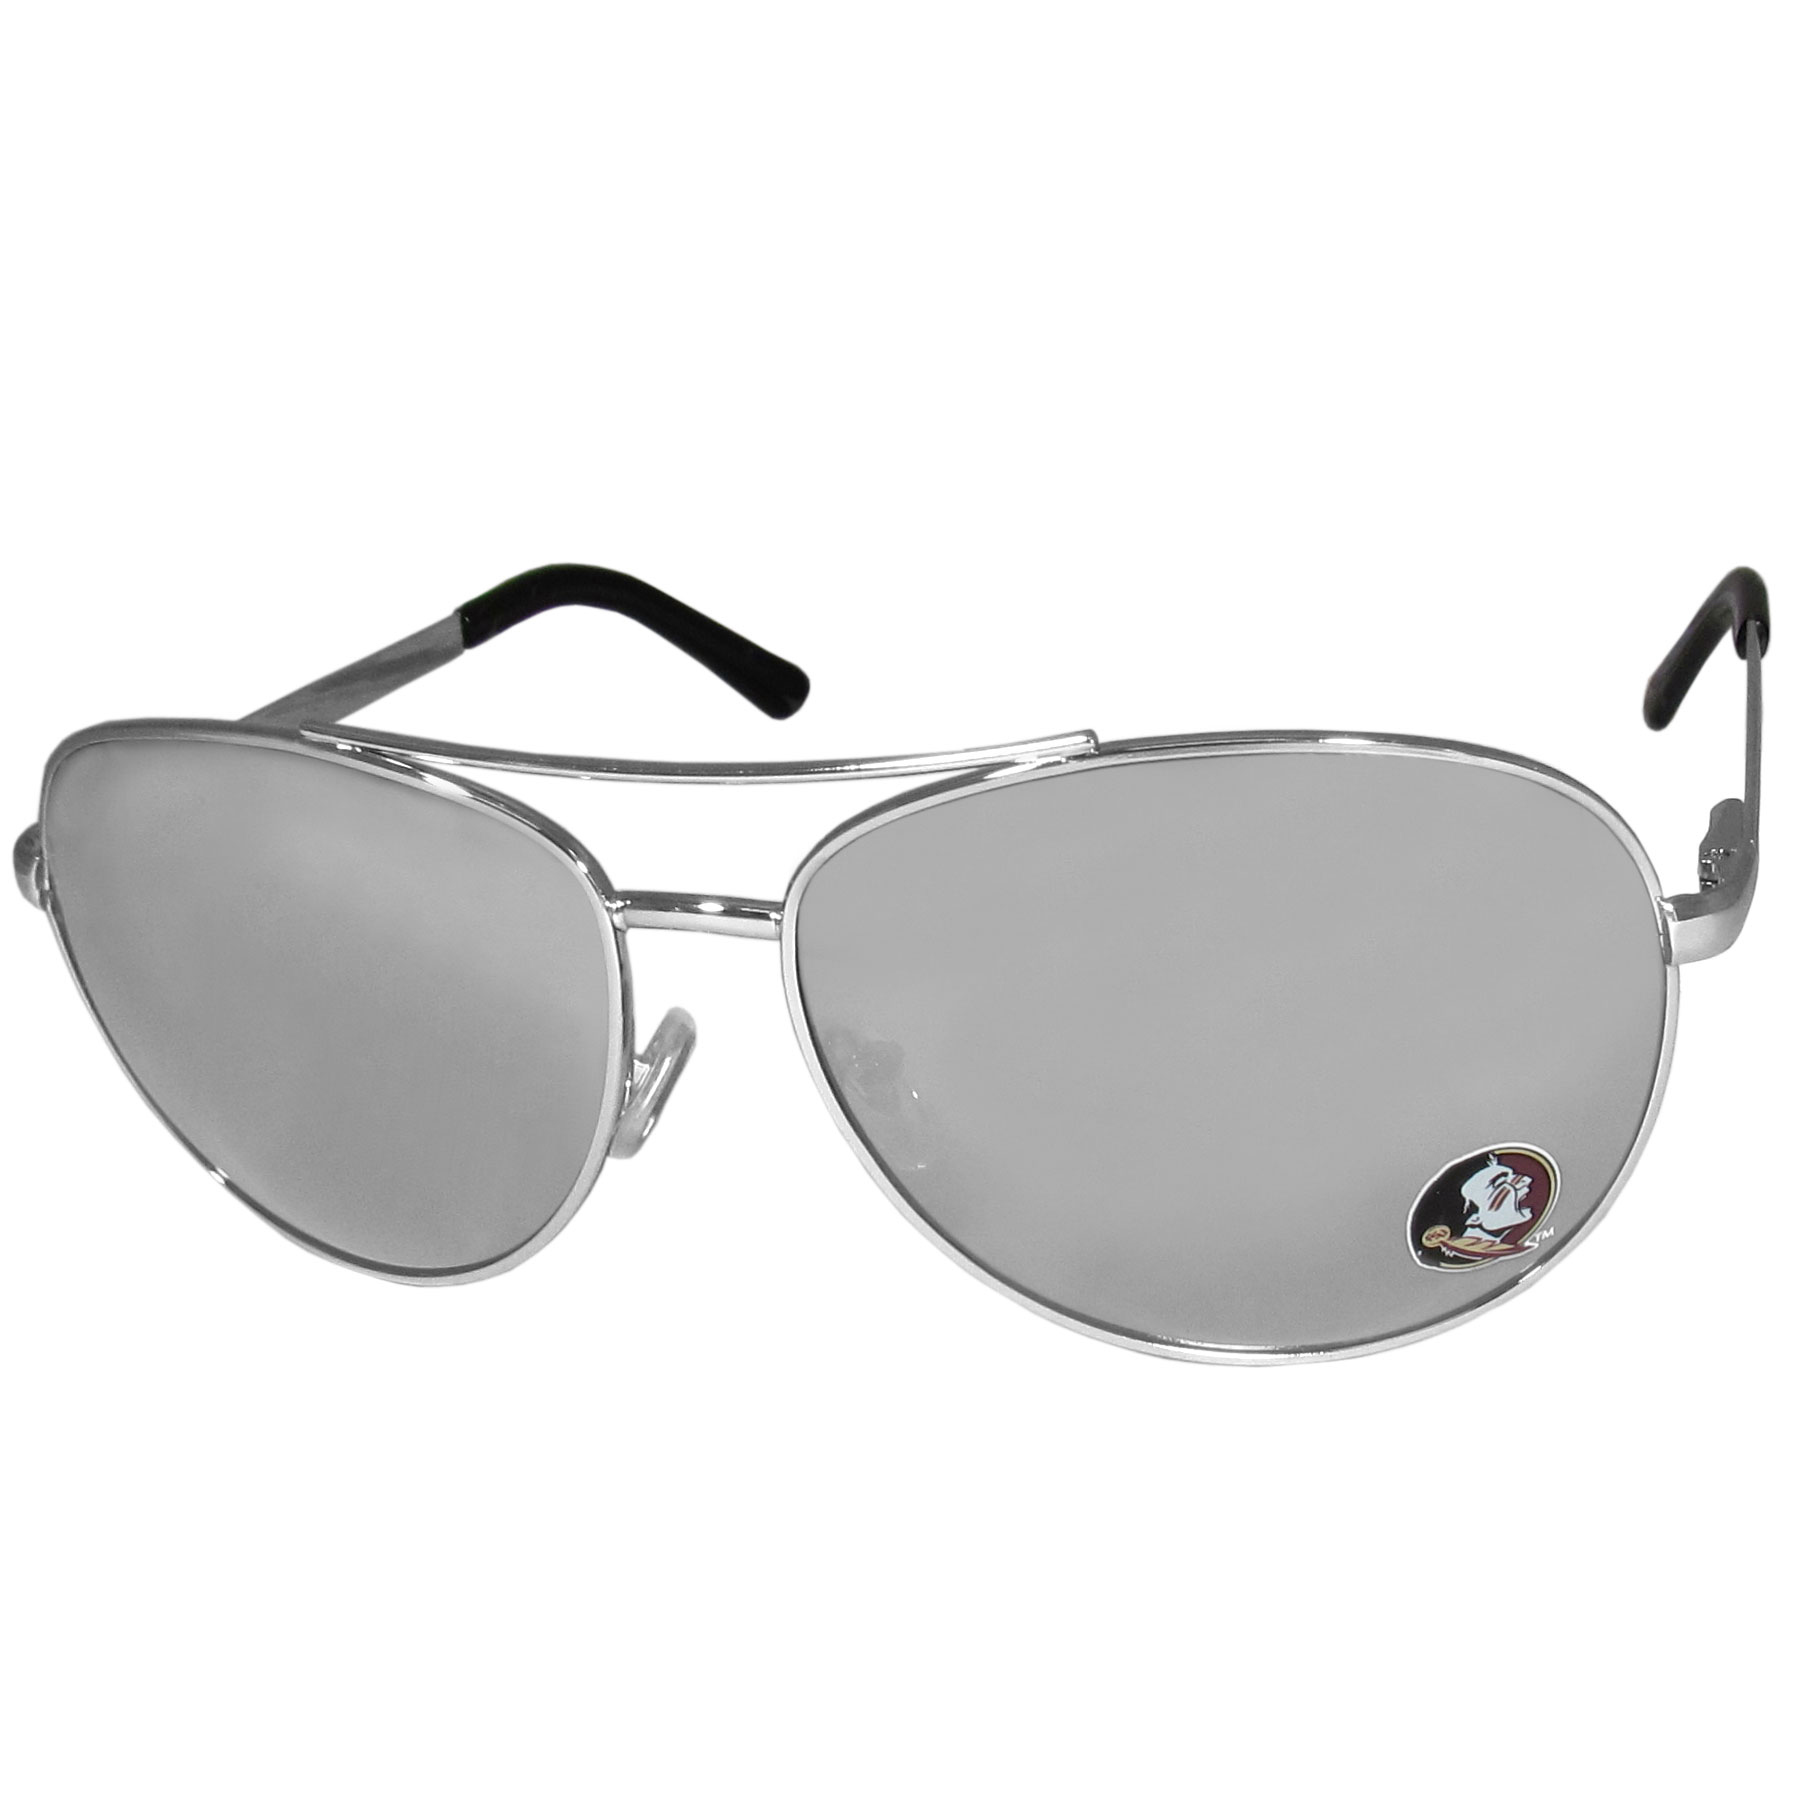 Florida St. Seminoles Aviator Sunglasses - Our aviator sunglasses have the iconic aviator style with mirrored lenses and metal frames. The glasses feature a silk screened Florida St. Seminoles logo in the corner of the lense. 100% UVA/UVB protection.